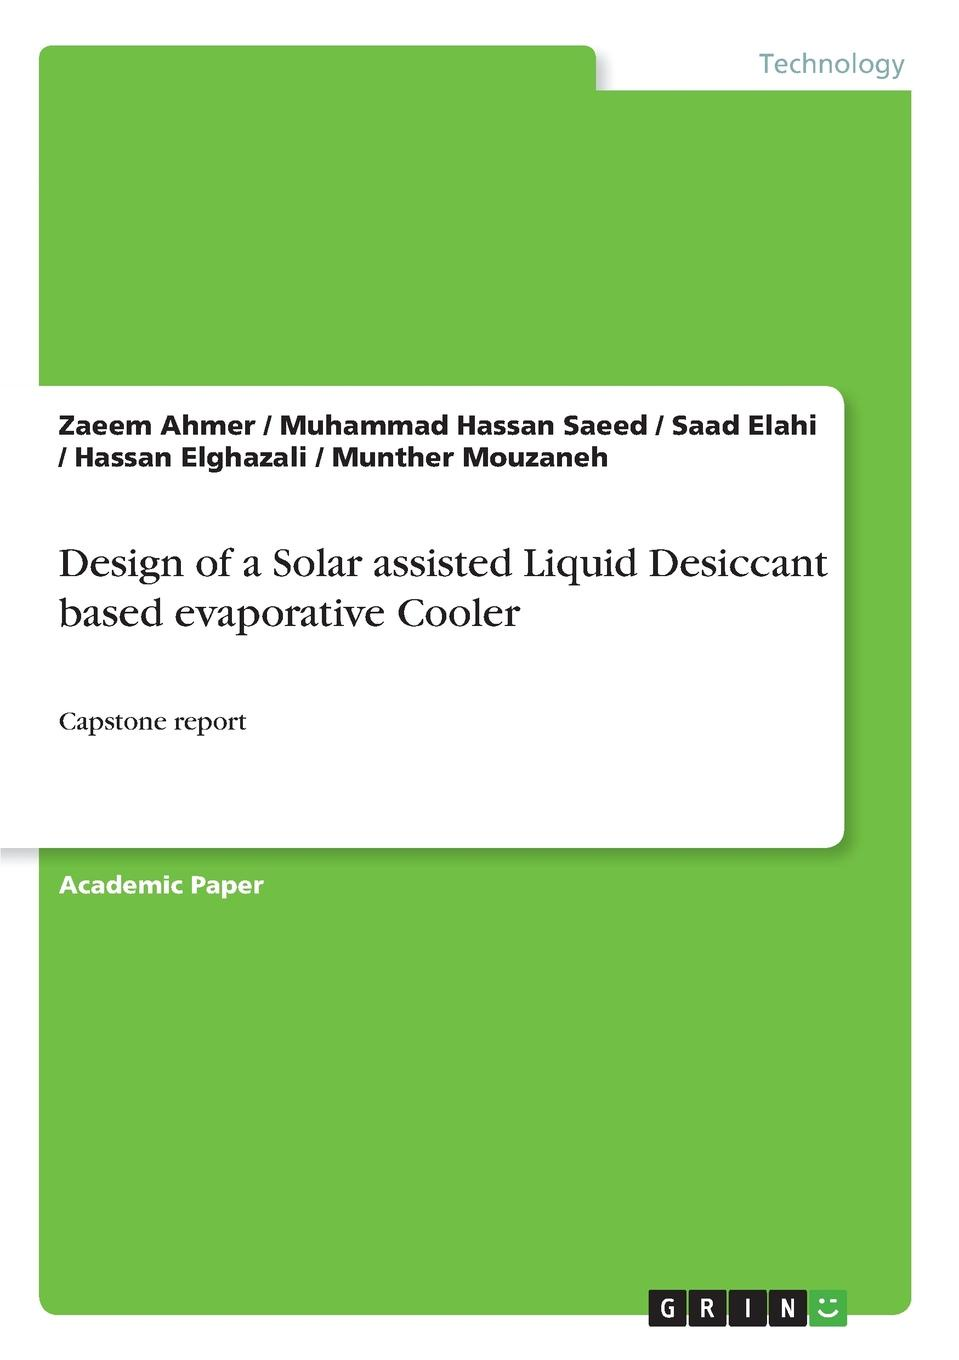 Zaeem Ahmer, Muhammad Hassan Saeed, Saad Elahi Design of a Solar assisted Liquid Desiccant based evaporative Cooler 12v 2 pin computer cooler small cooling fan 120mm x 120mm x 25mm pc box system hydraulic cooling fan for computer heatsink z09